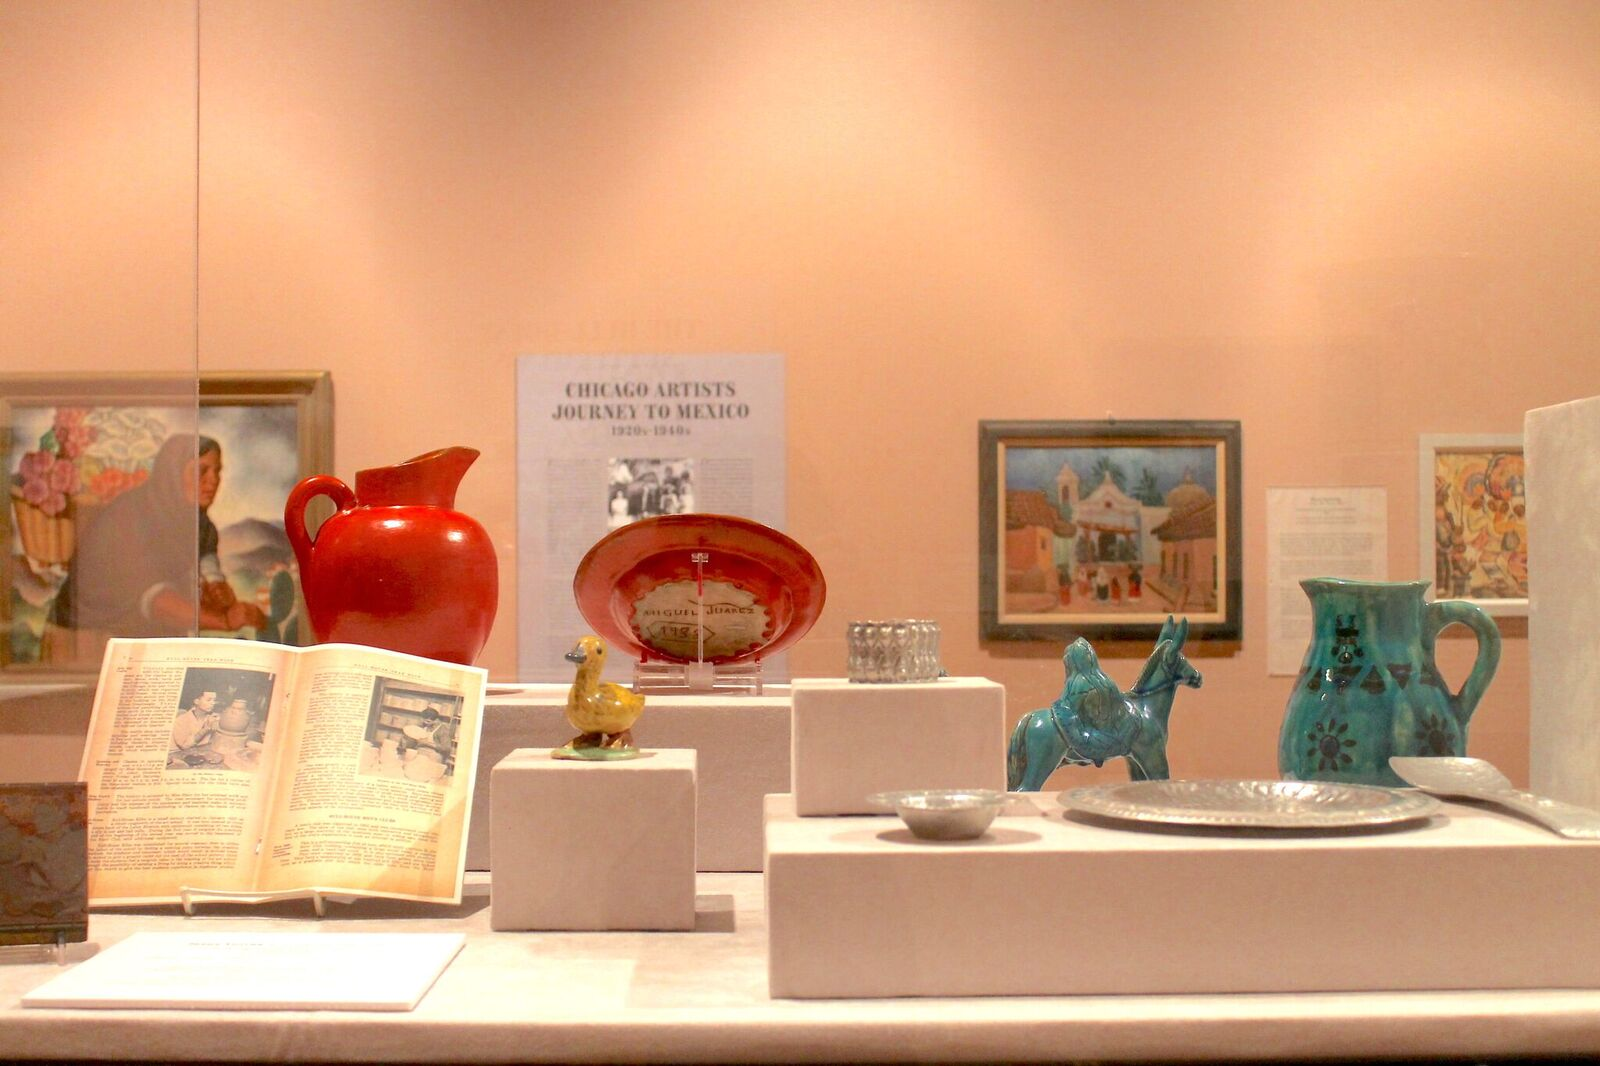 """Detail of a glass case from the exhibition holding silver dishware, ceramic jugs, and ceramic sculptures — one a yellow duck and another a green religious sculpture of Joseph walking behind Mary on a donkey. In the background there is a painting of an indigenous Mexican woman carrying flowers on her back in a basket, four photographs of Mexican artesanos working, and wall text that reads """"Chicago Artists Journey to Mexico."""" Image by Jennifer Patiño Cervantes."""